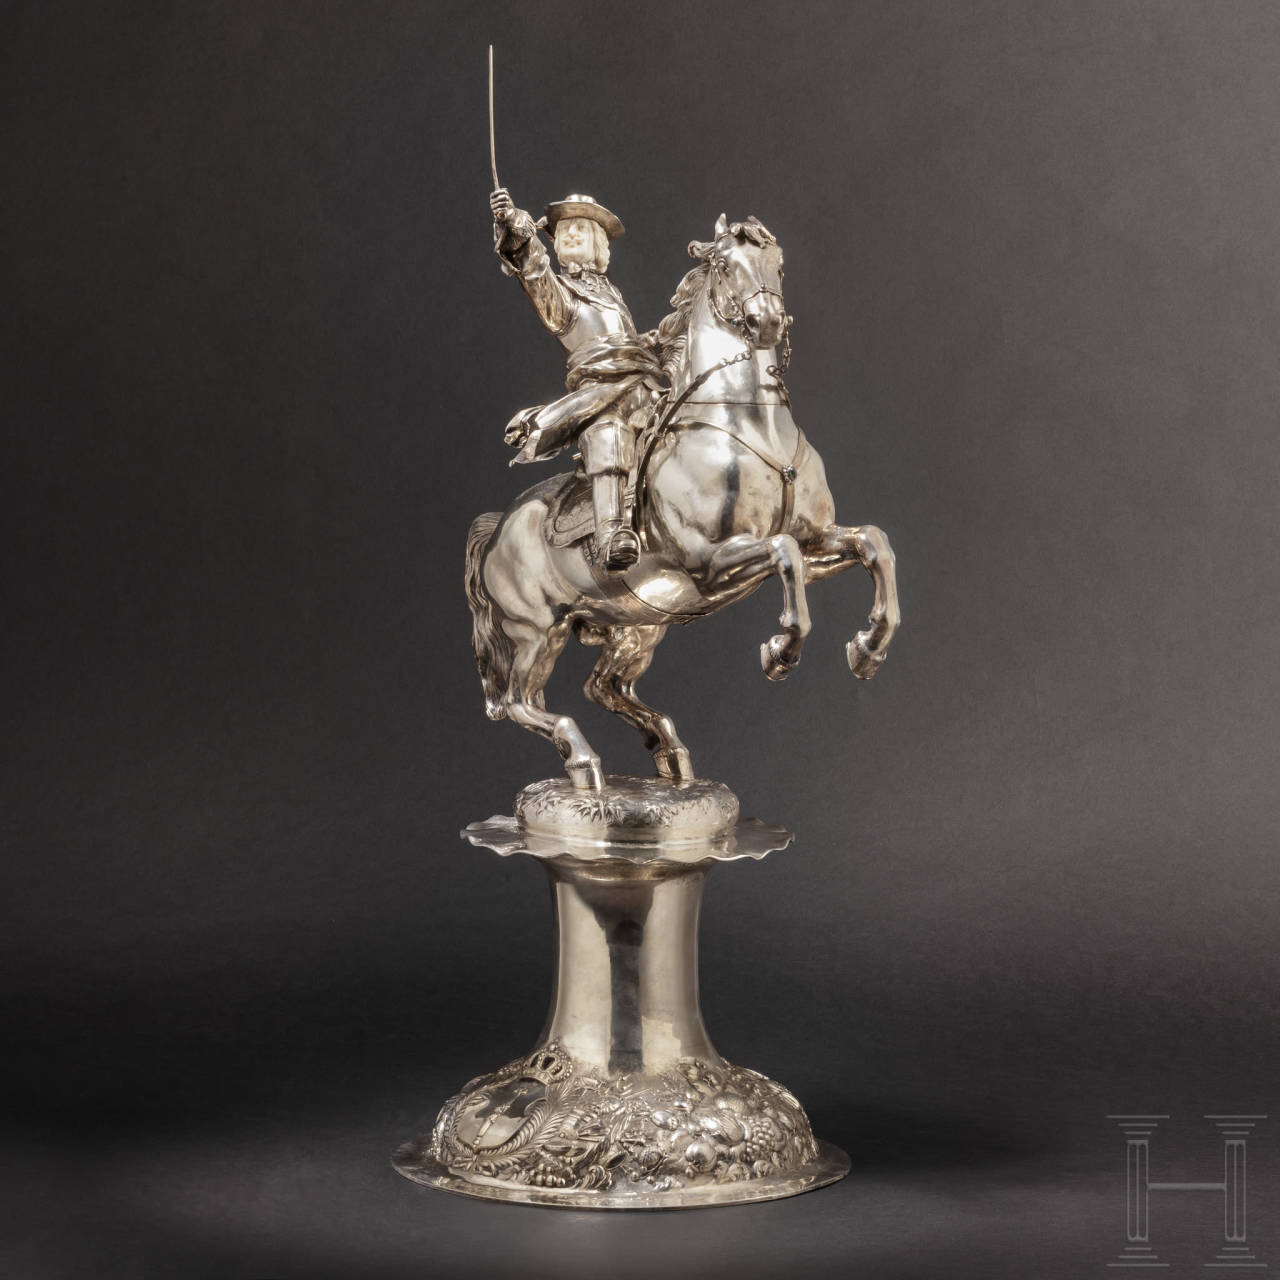 A monumental German equestrian figure of silver in honour of the Great Elector Friedrich Wilhelm (1620 – 1688), circa 1900